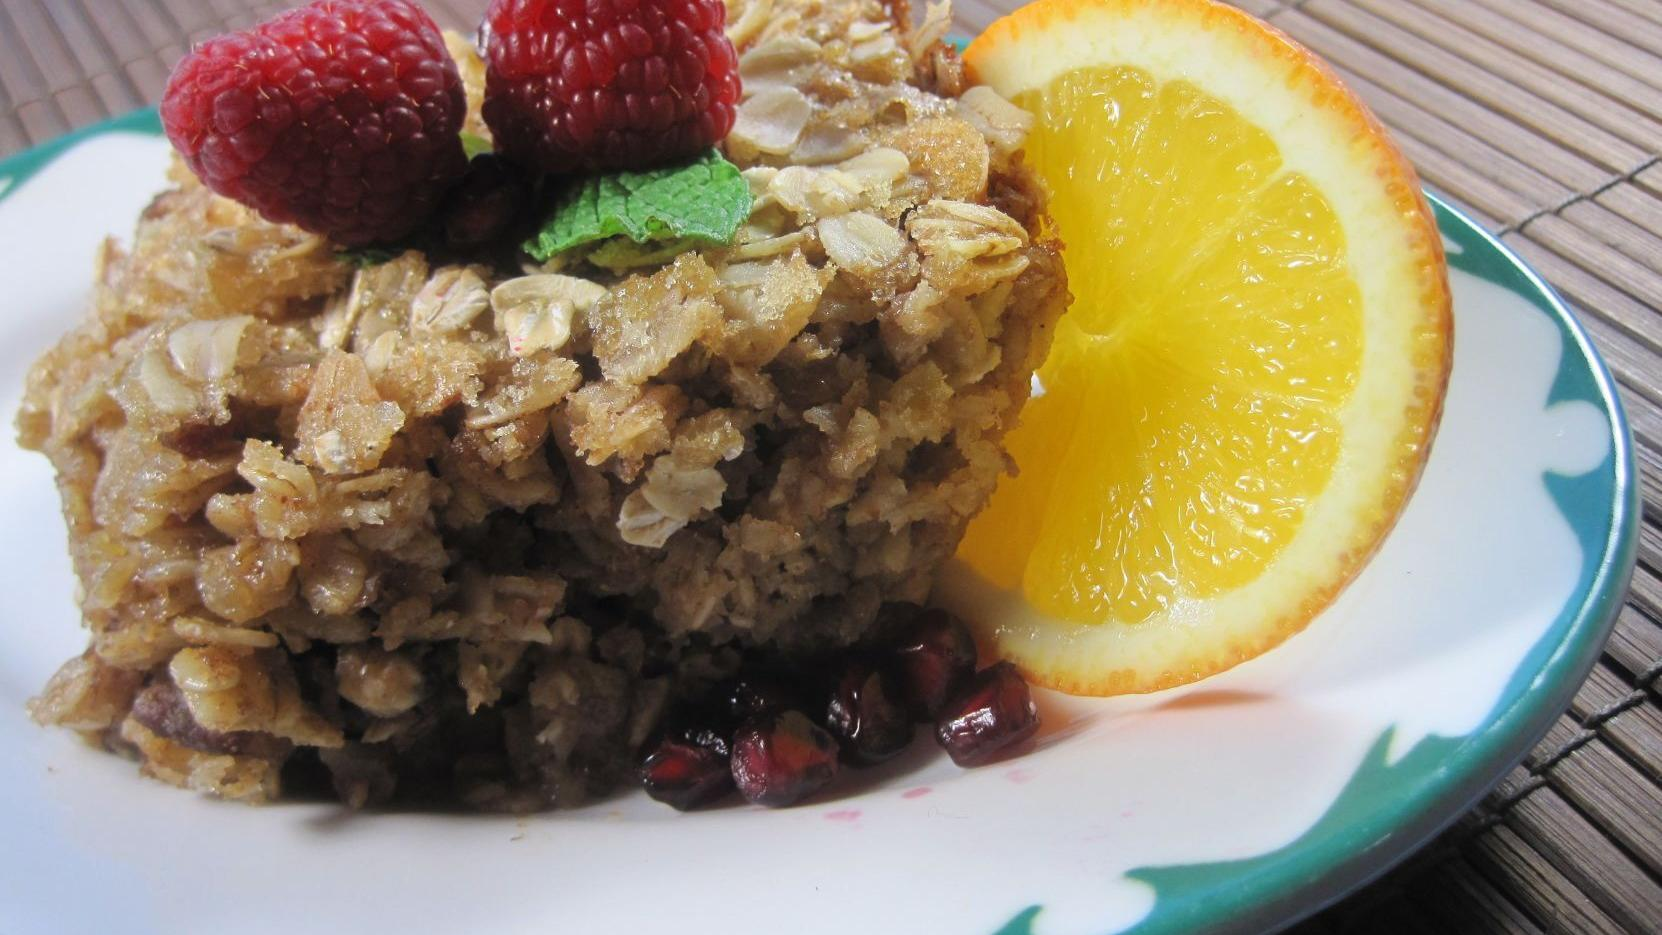 Russell's on Macklind shares its recipe for satisfying baked oatmeal